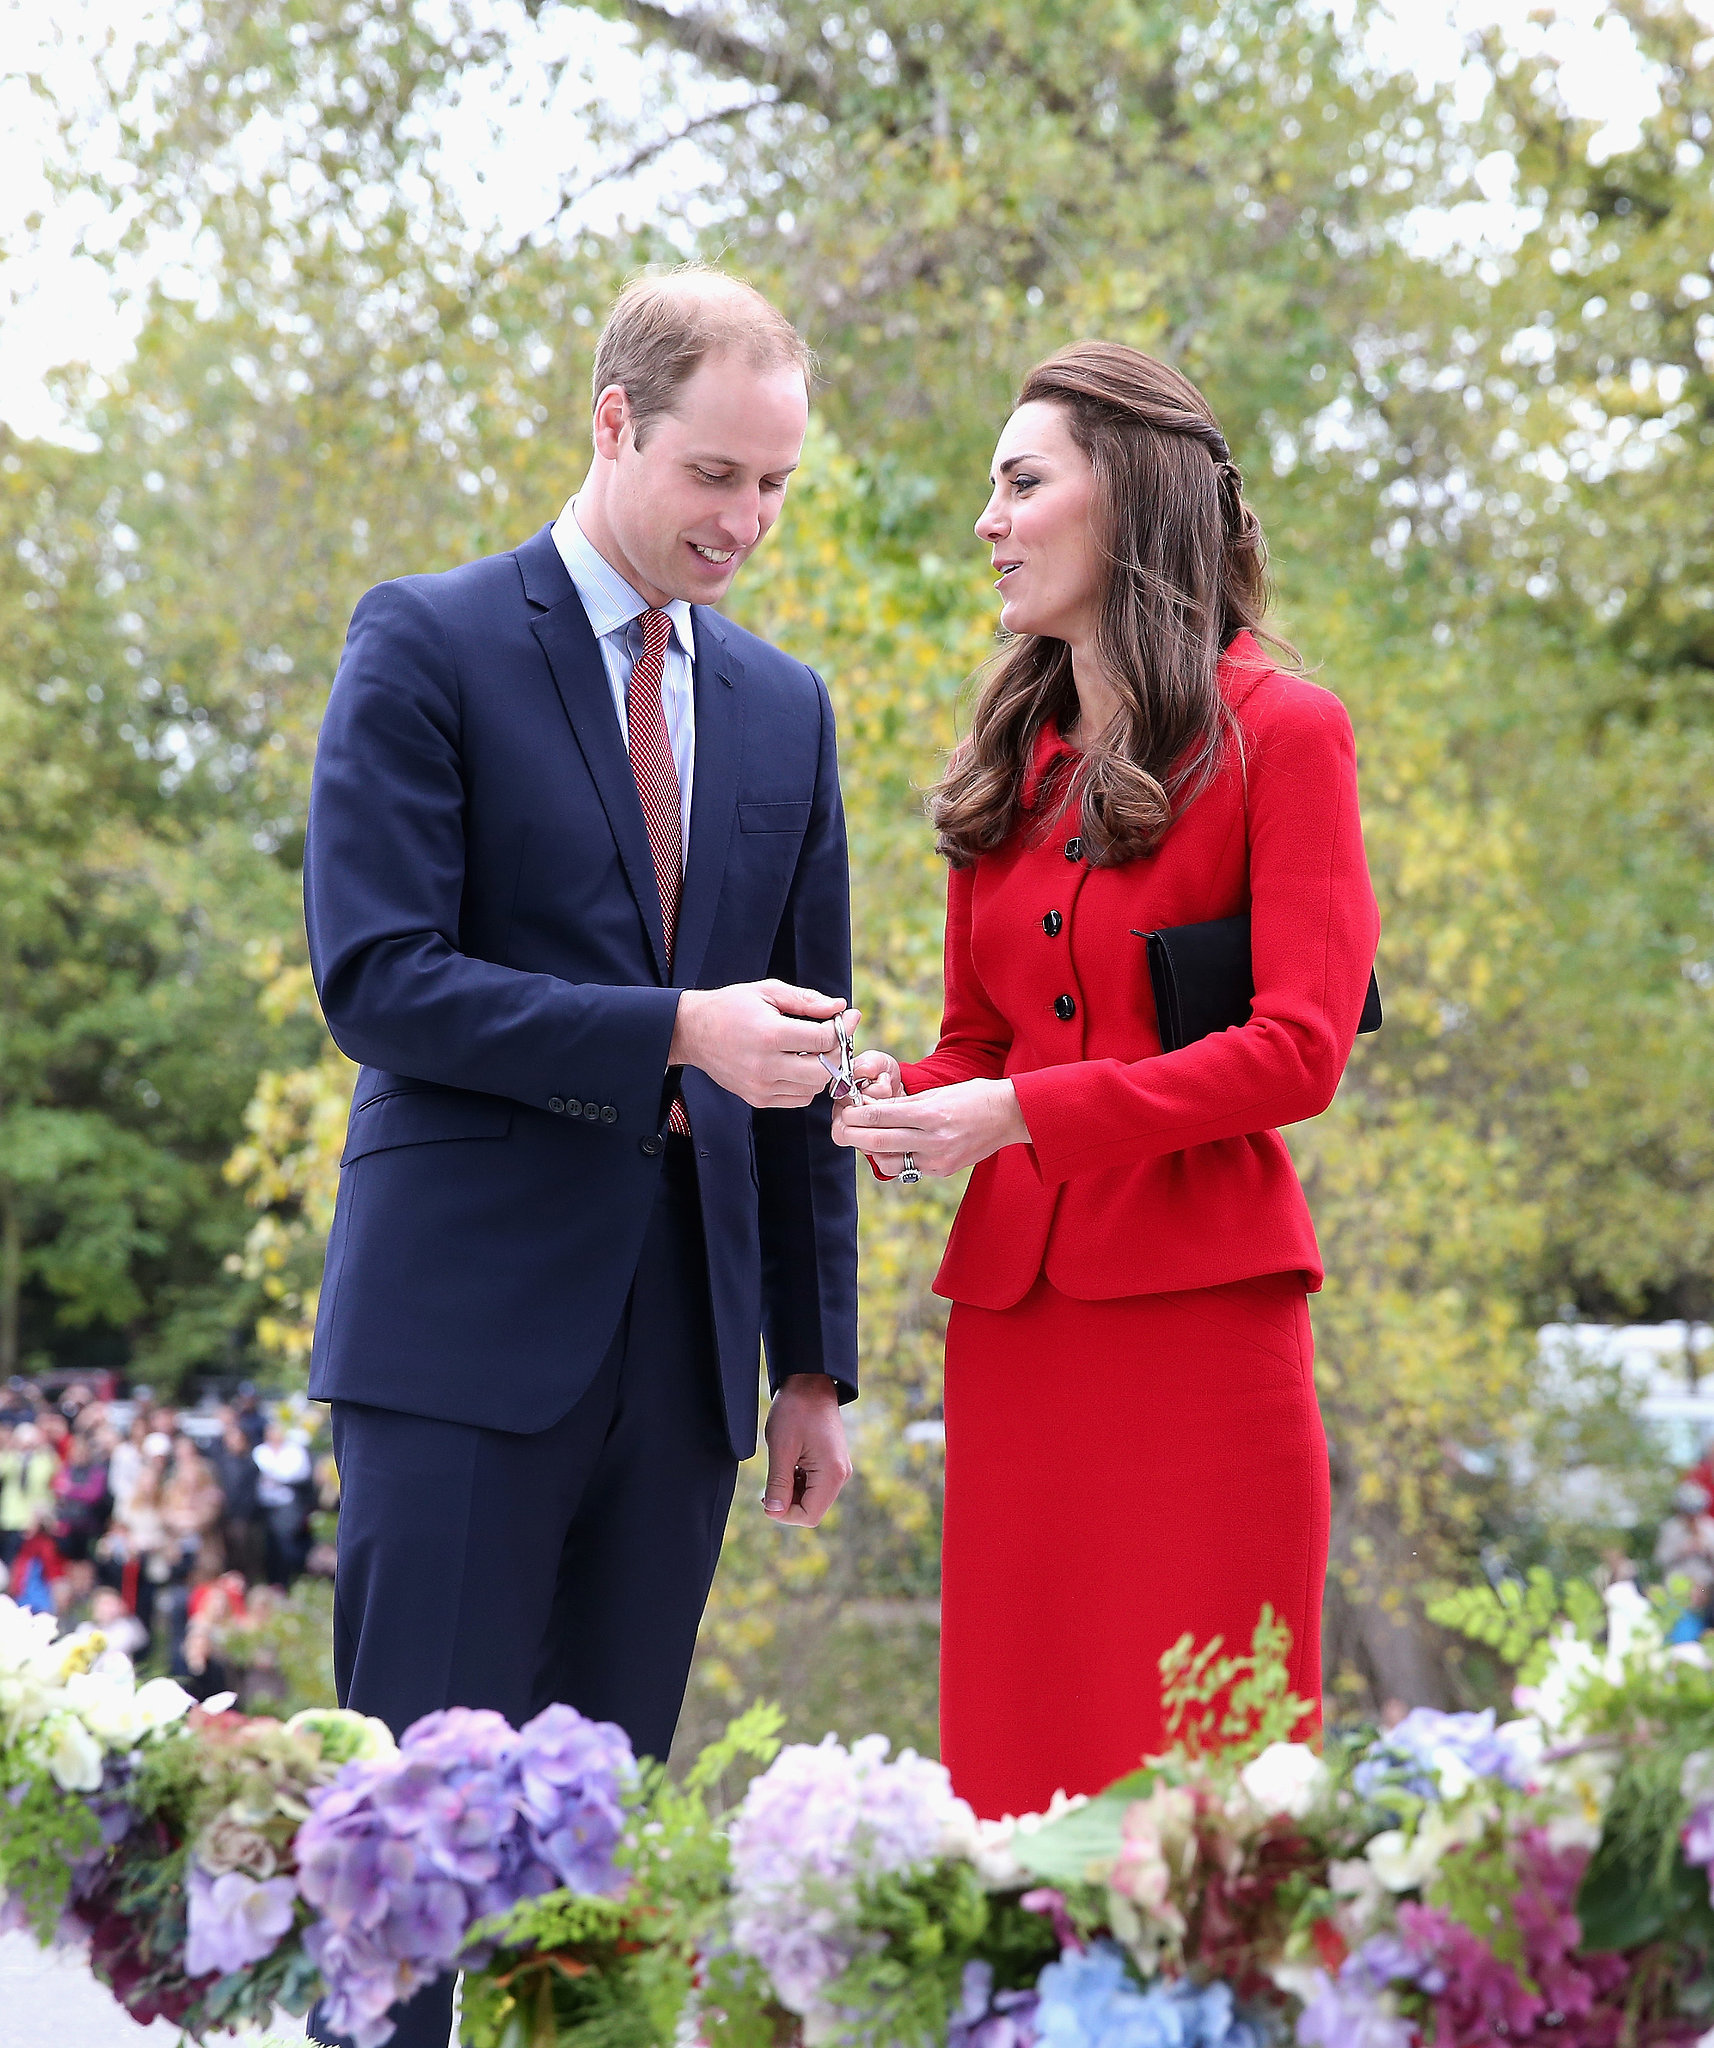 During their 2014 tour, Will and Kate cut the flower ribbon at the Botanical Gardens in Christchurch, New Zealand.